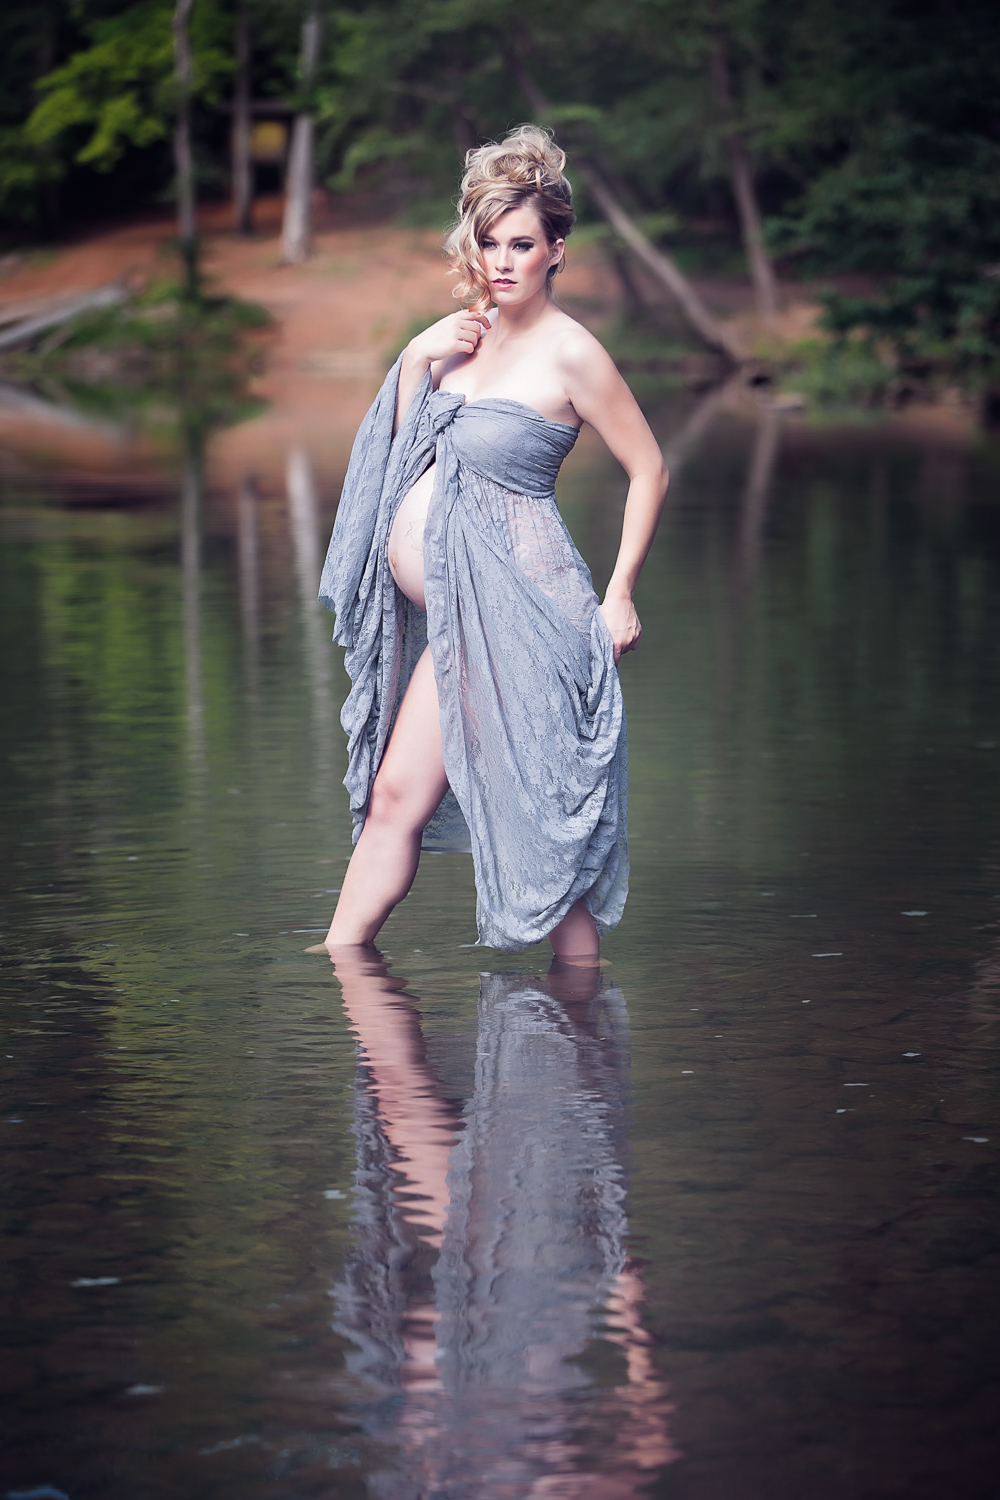 cd93b183f44 Unique Edgy Maternity Photos - Caroline Z Photography - Eno River State Park